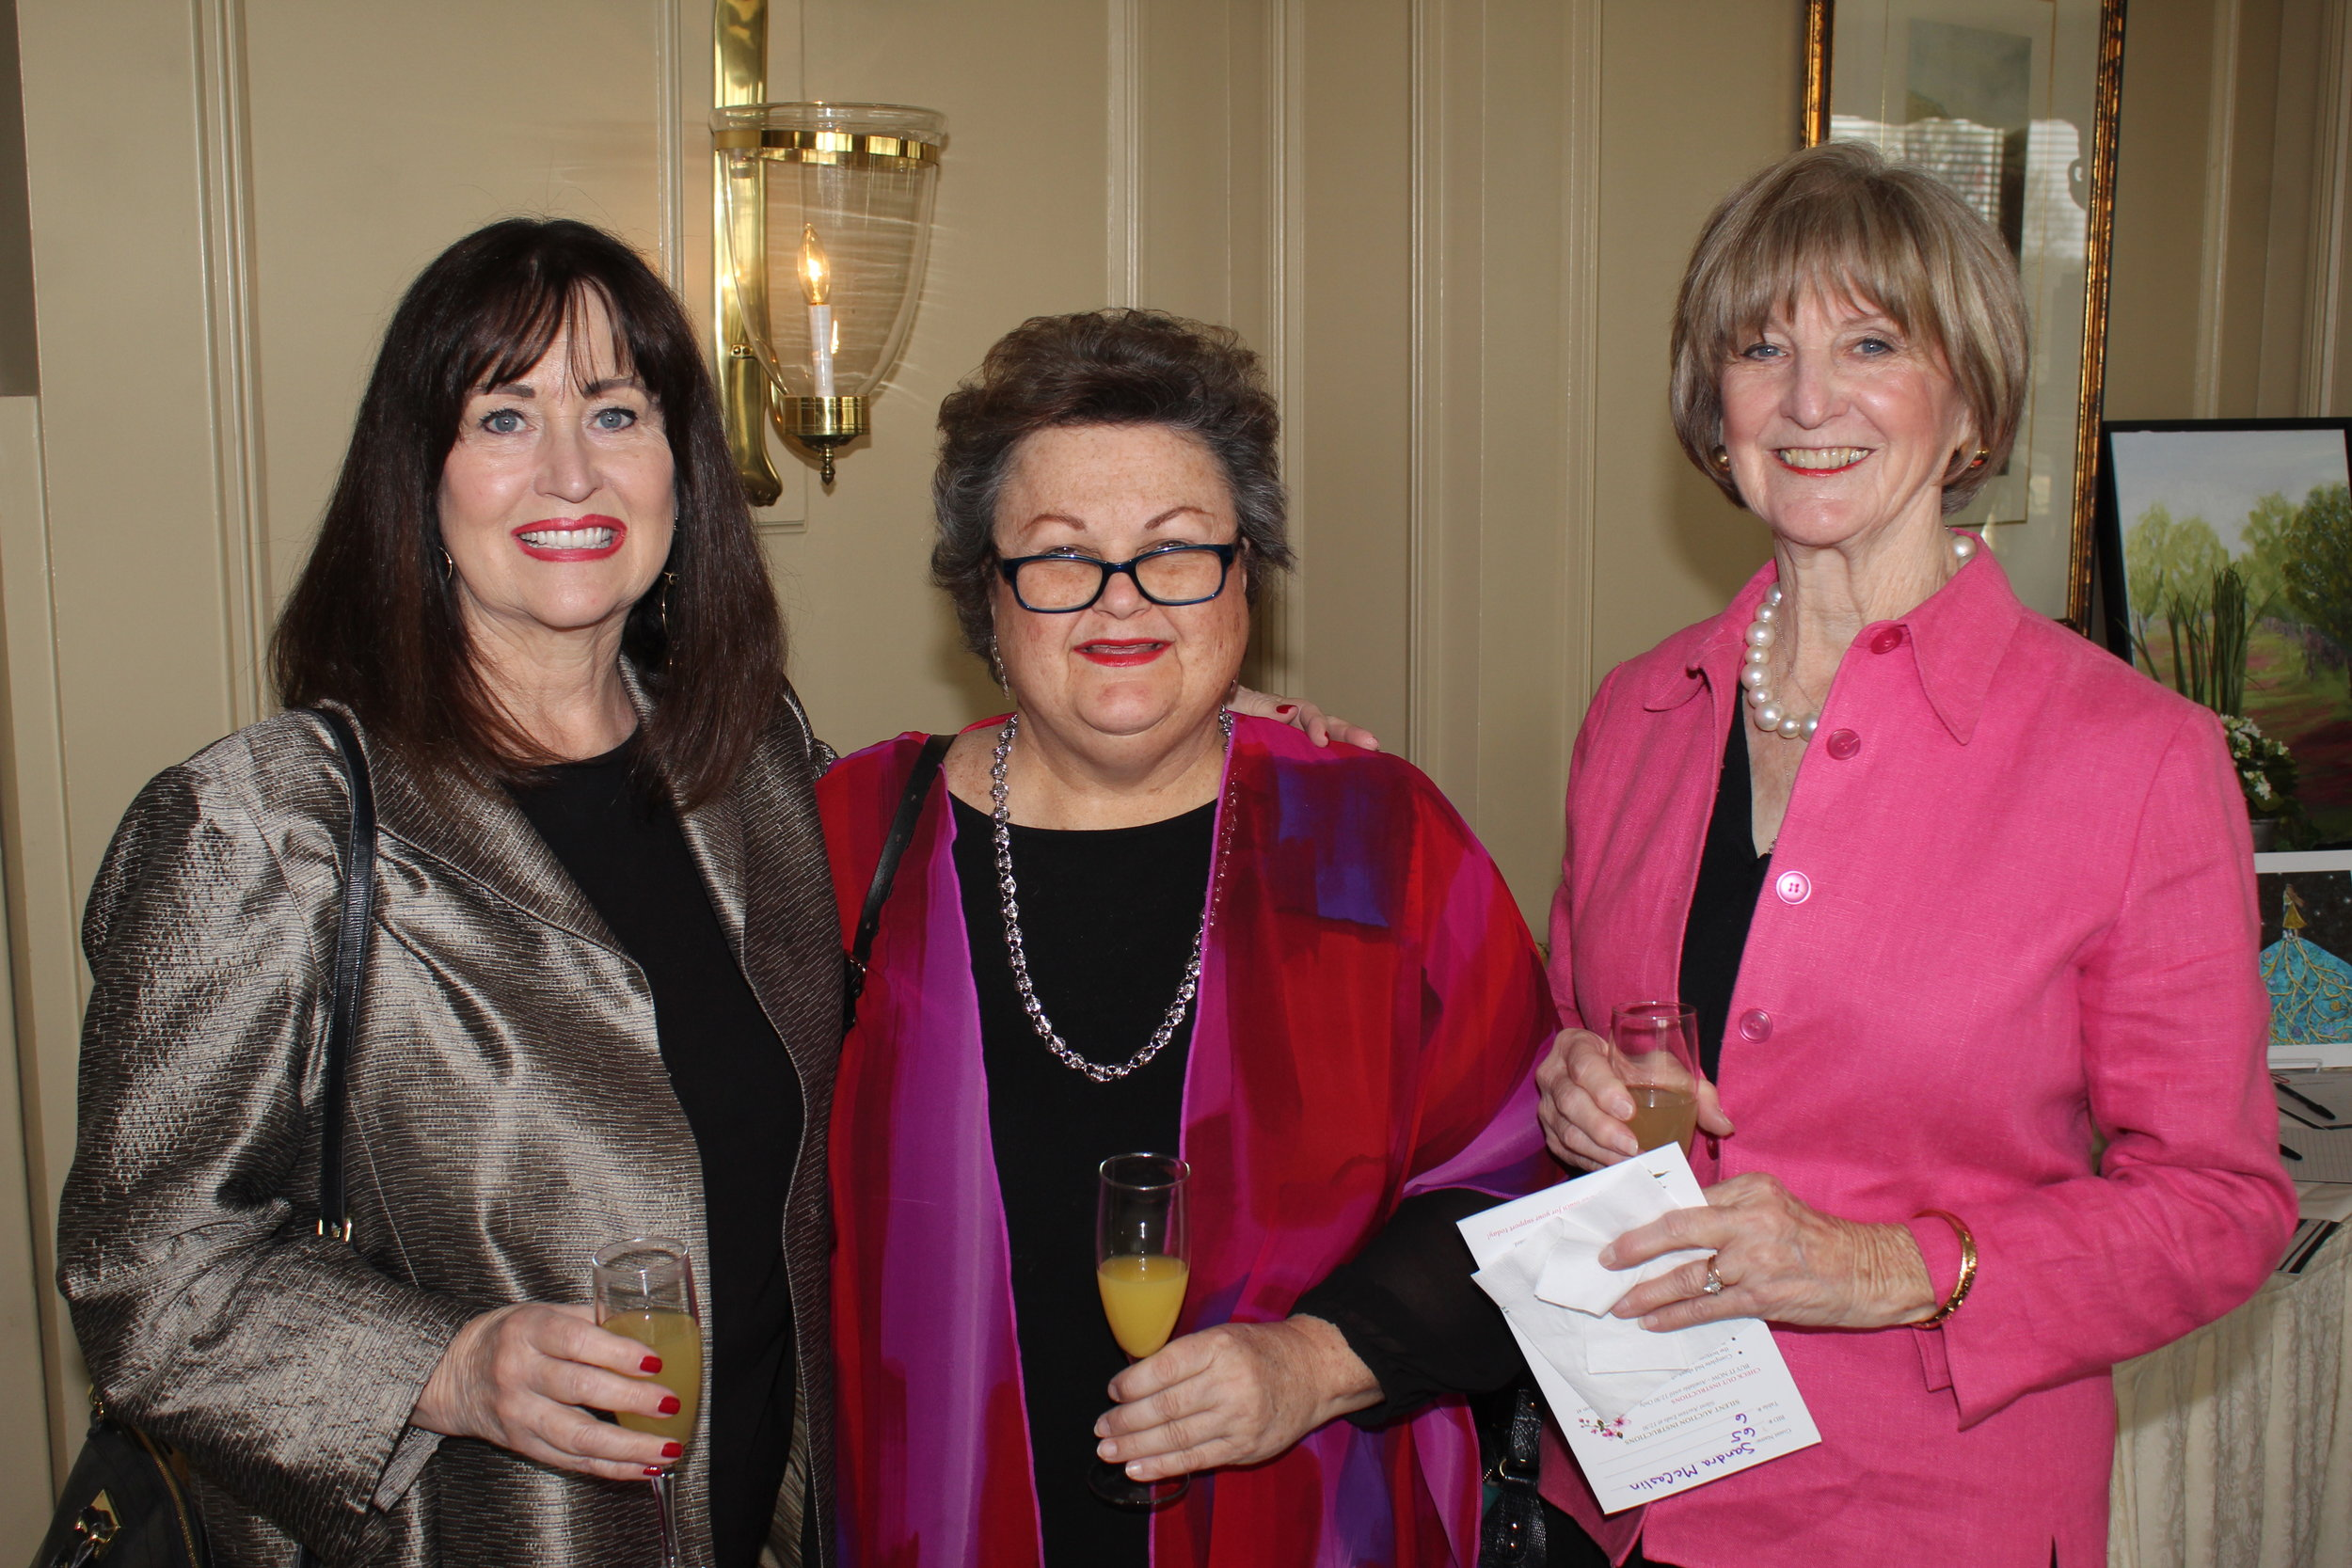 Dianne Roth, Pat Higgins and Sandra McCaslin